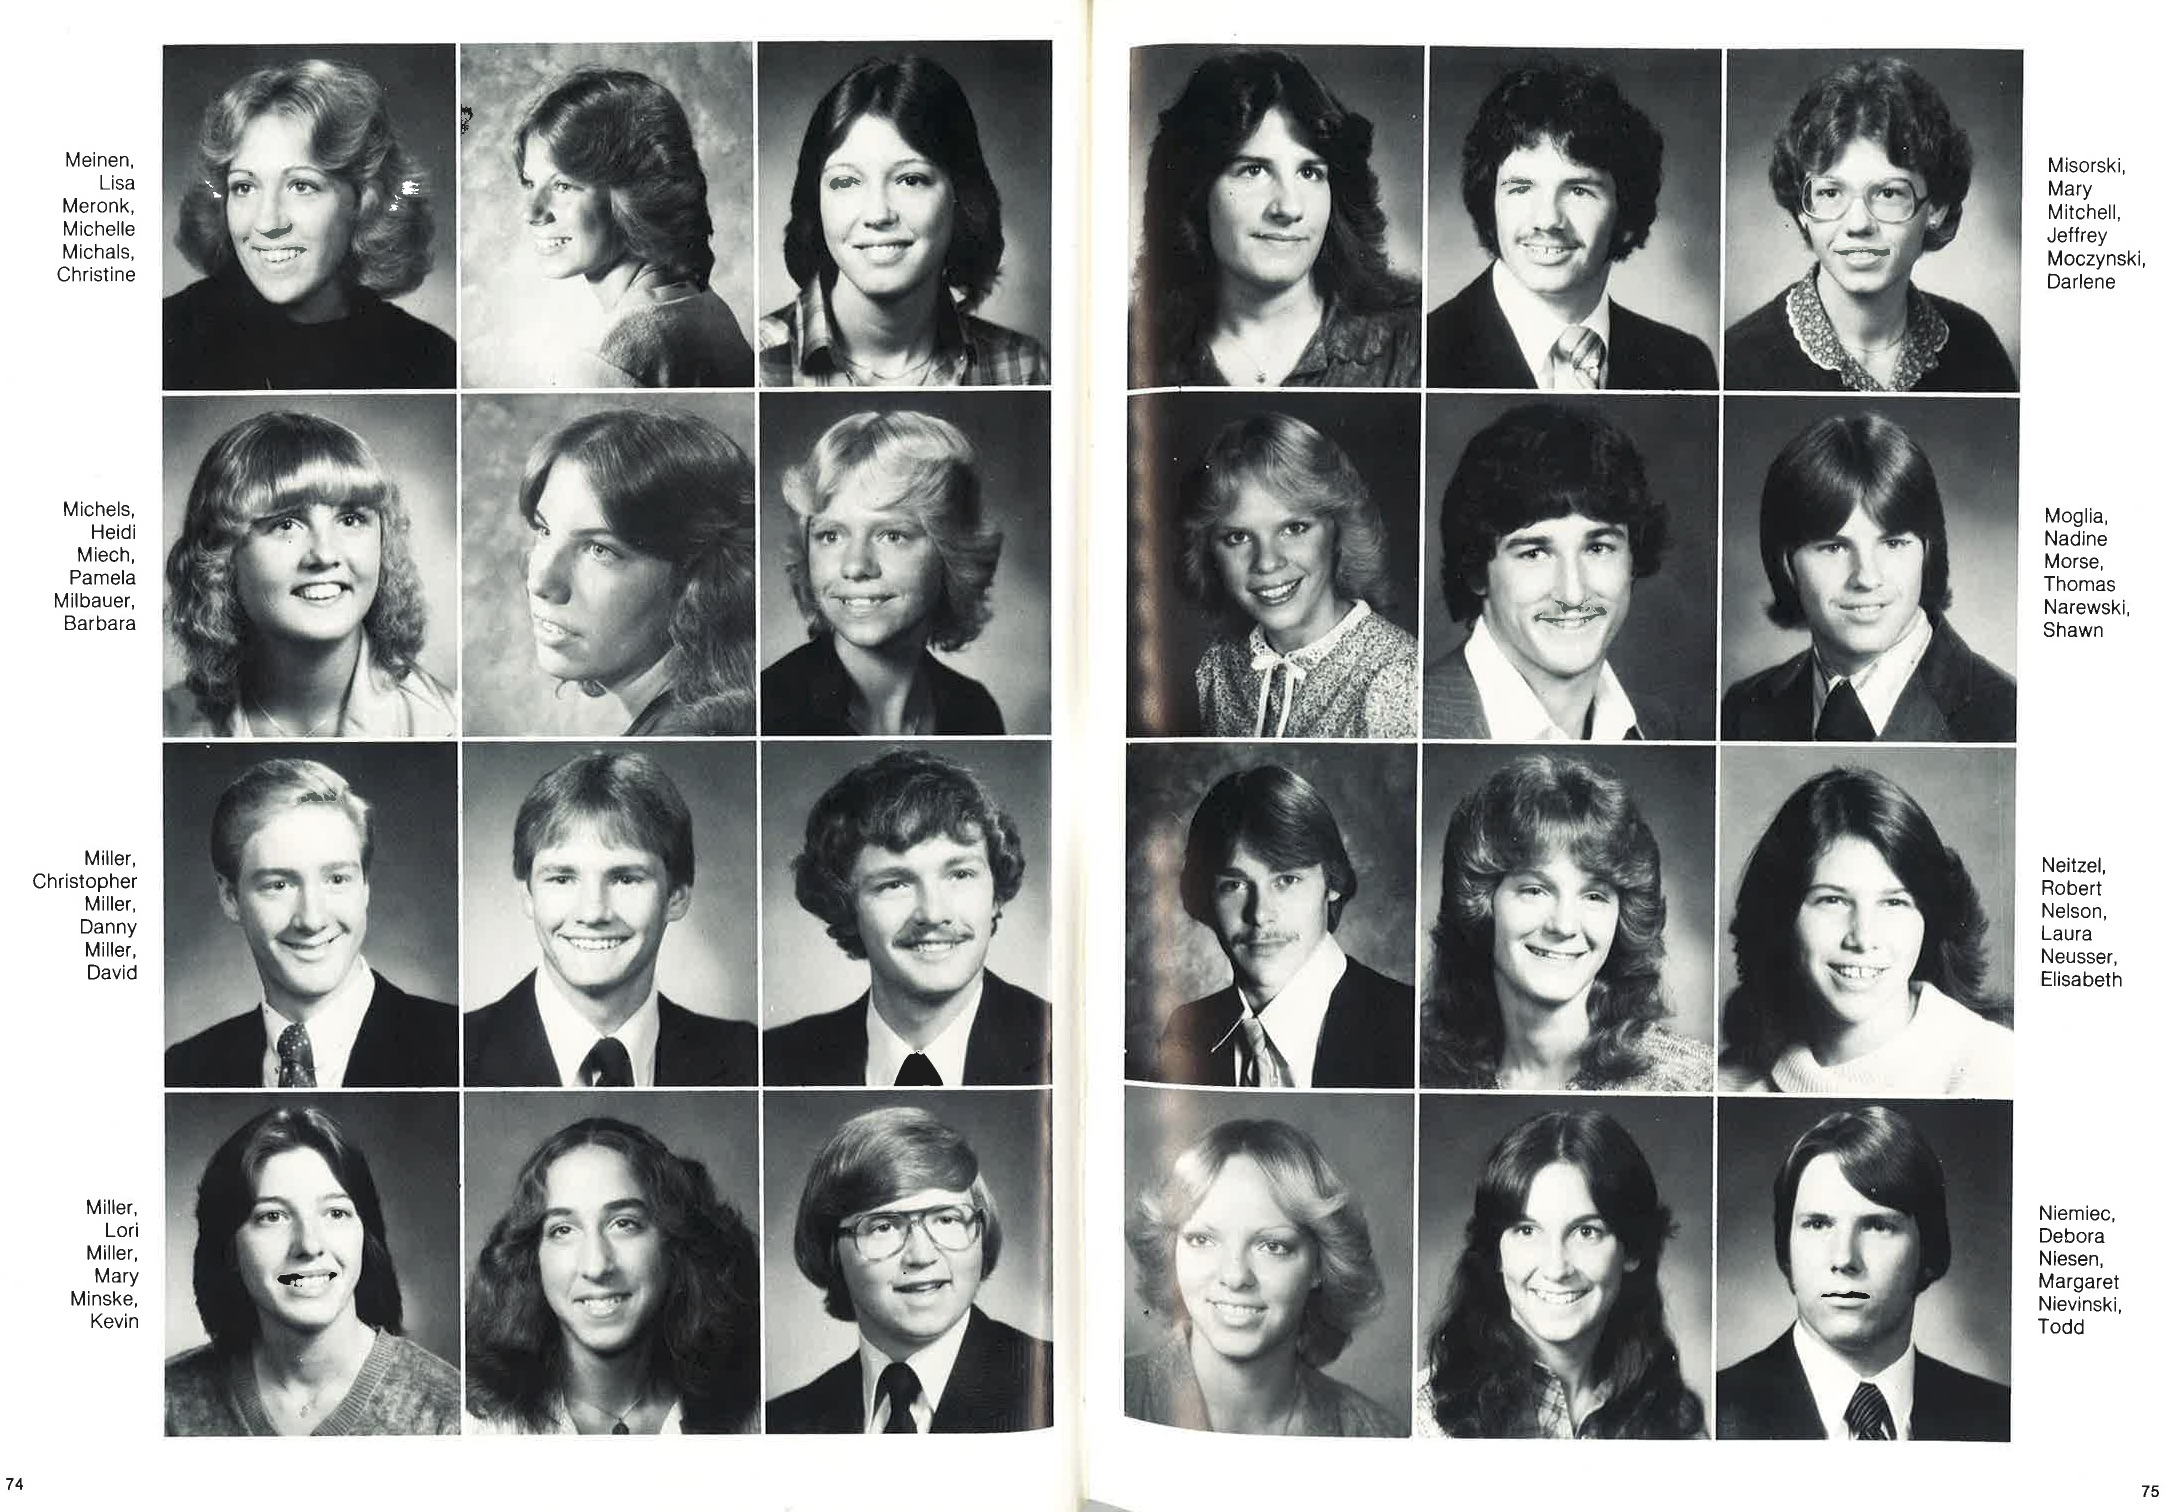 1981_Yearbook_74.jpg